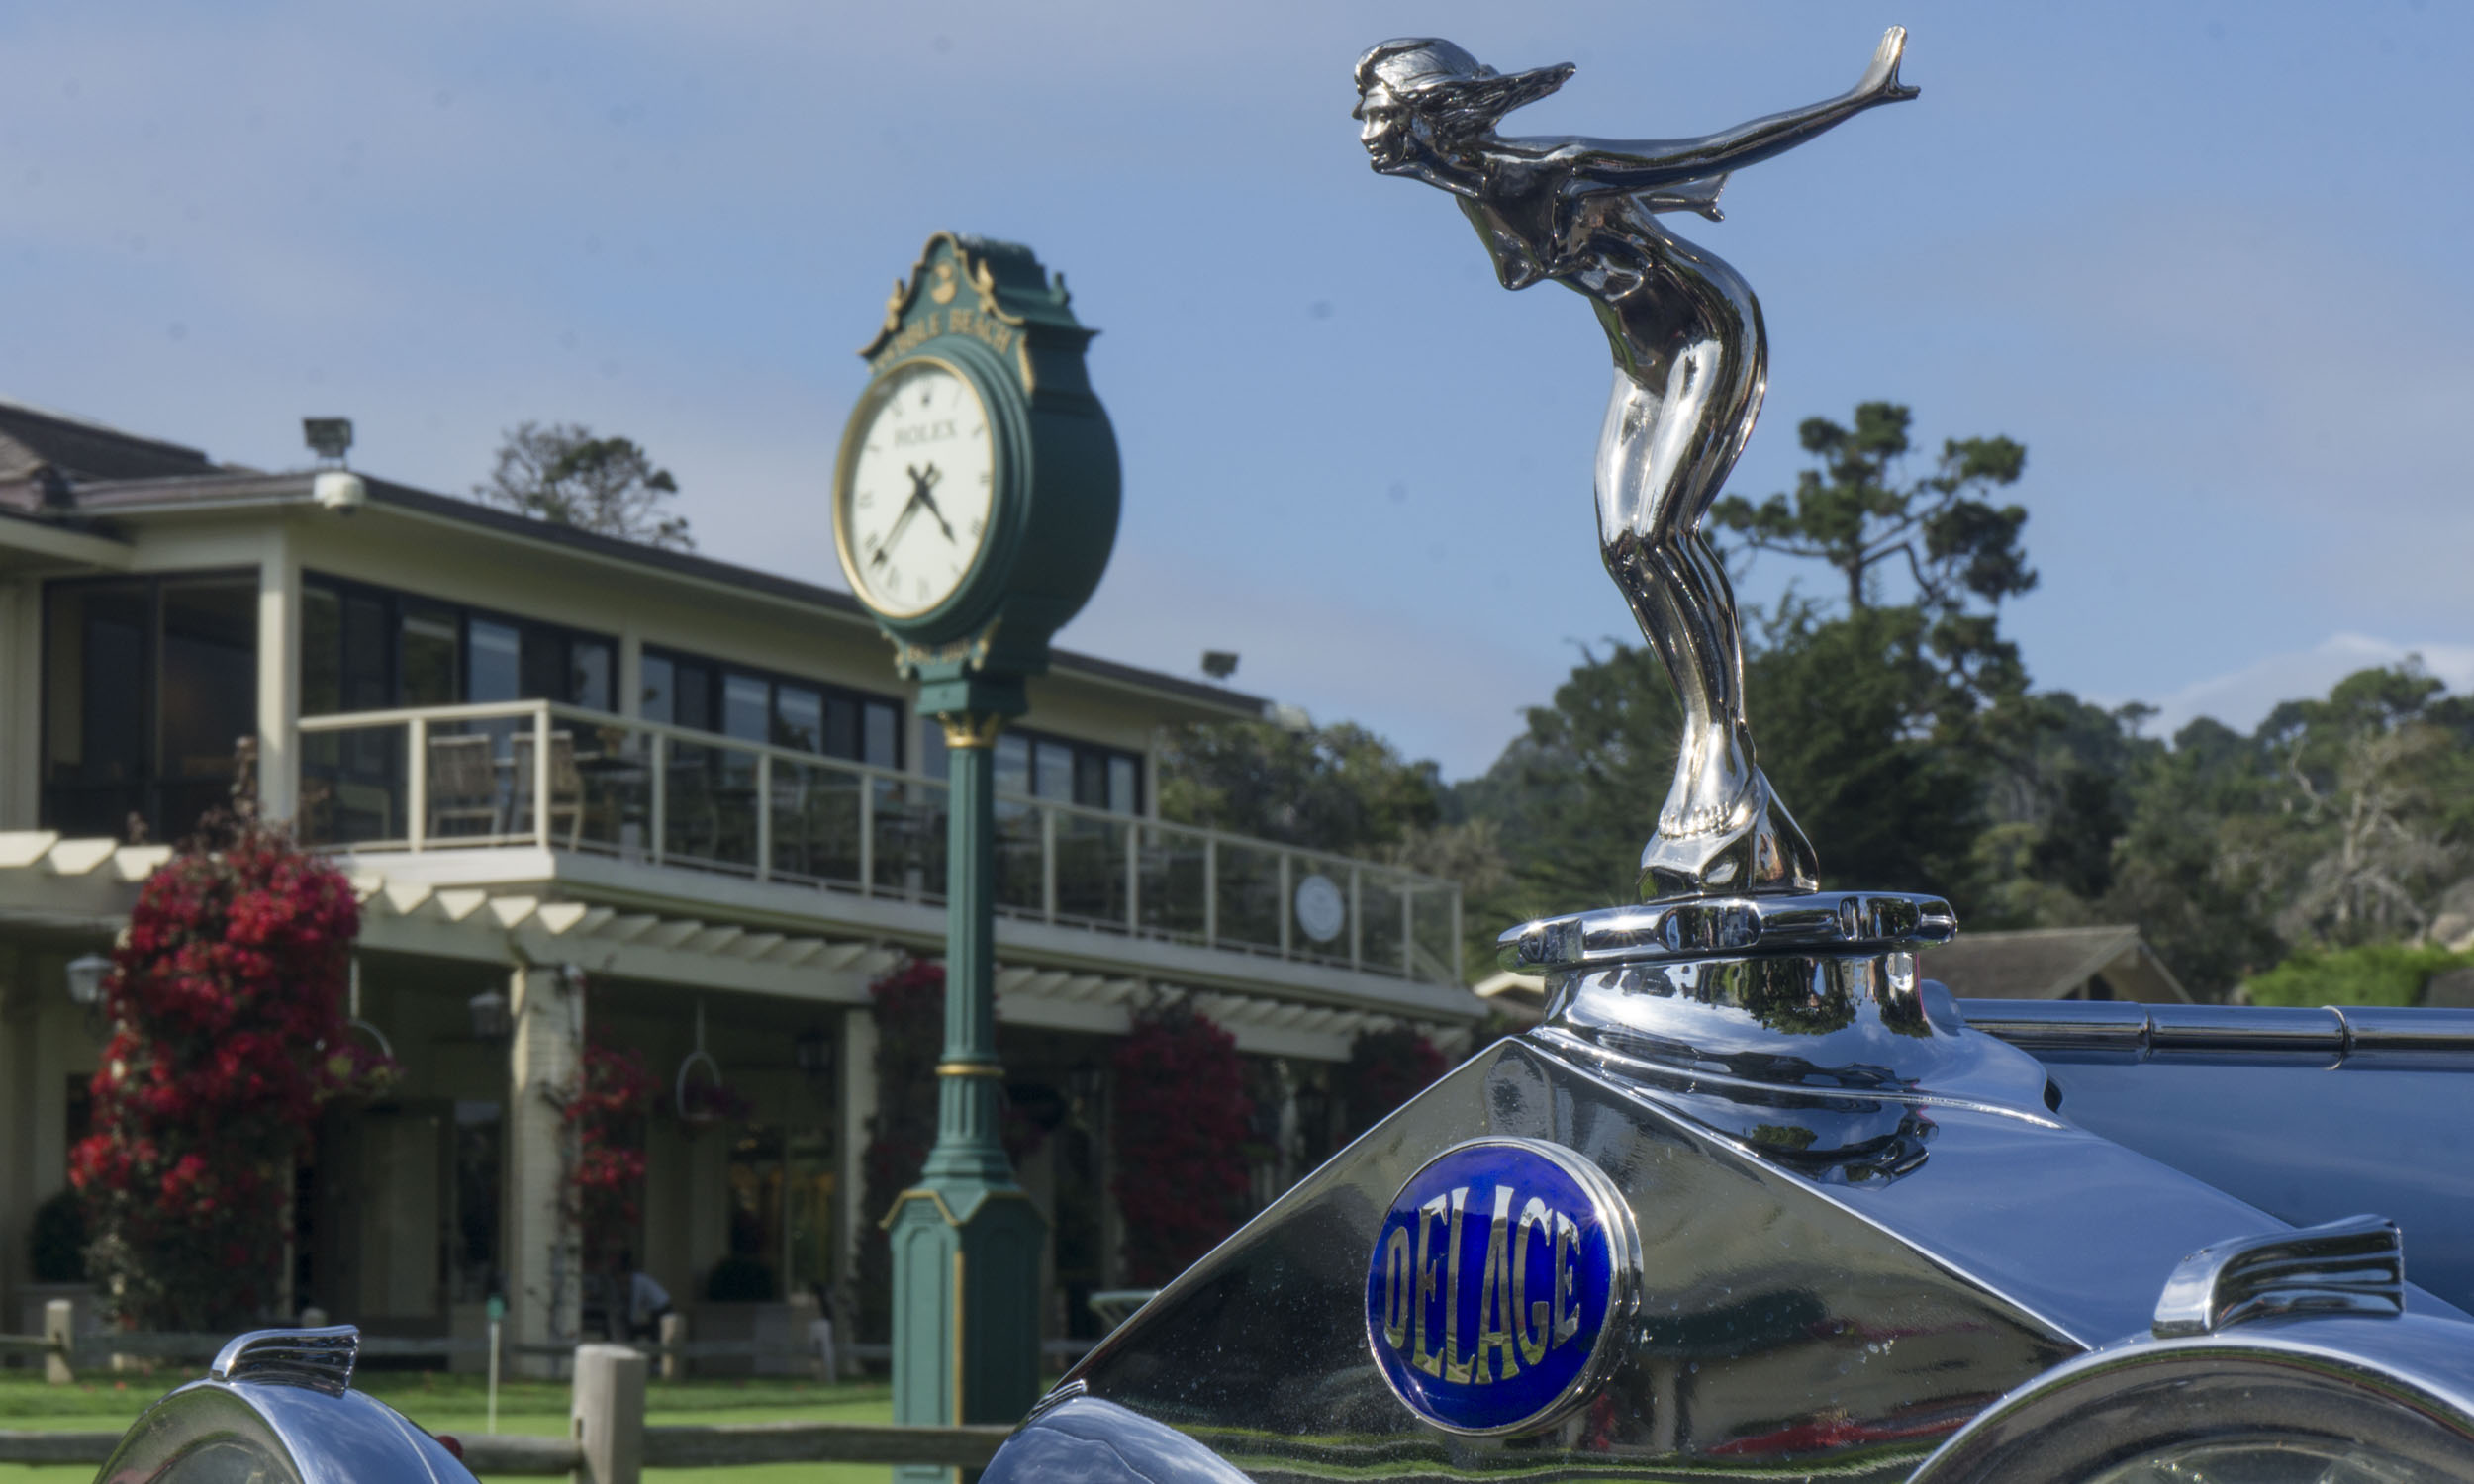 The Motoring Classic arrives at the 68th Annual Pebble Beach Concours d'Elegance Courtesy of AutoNXT